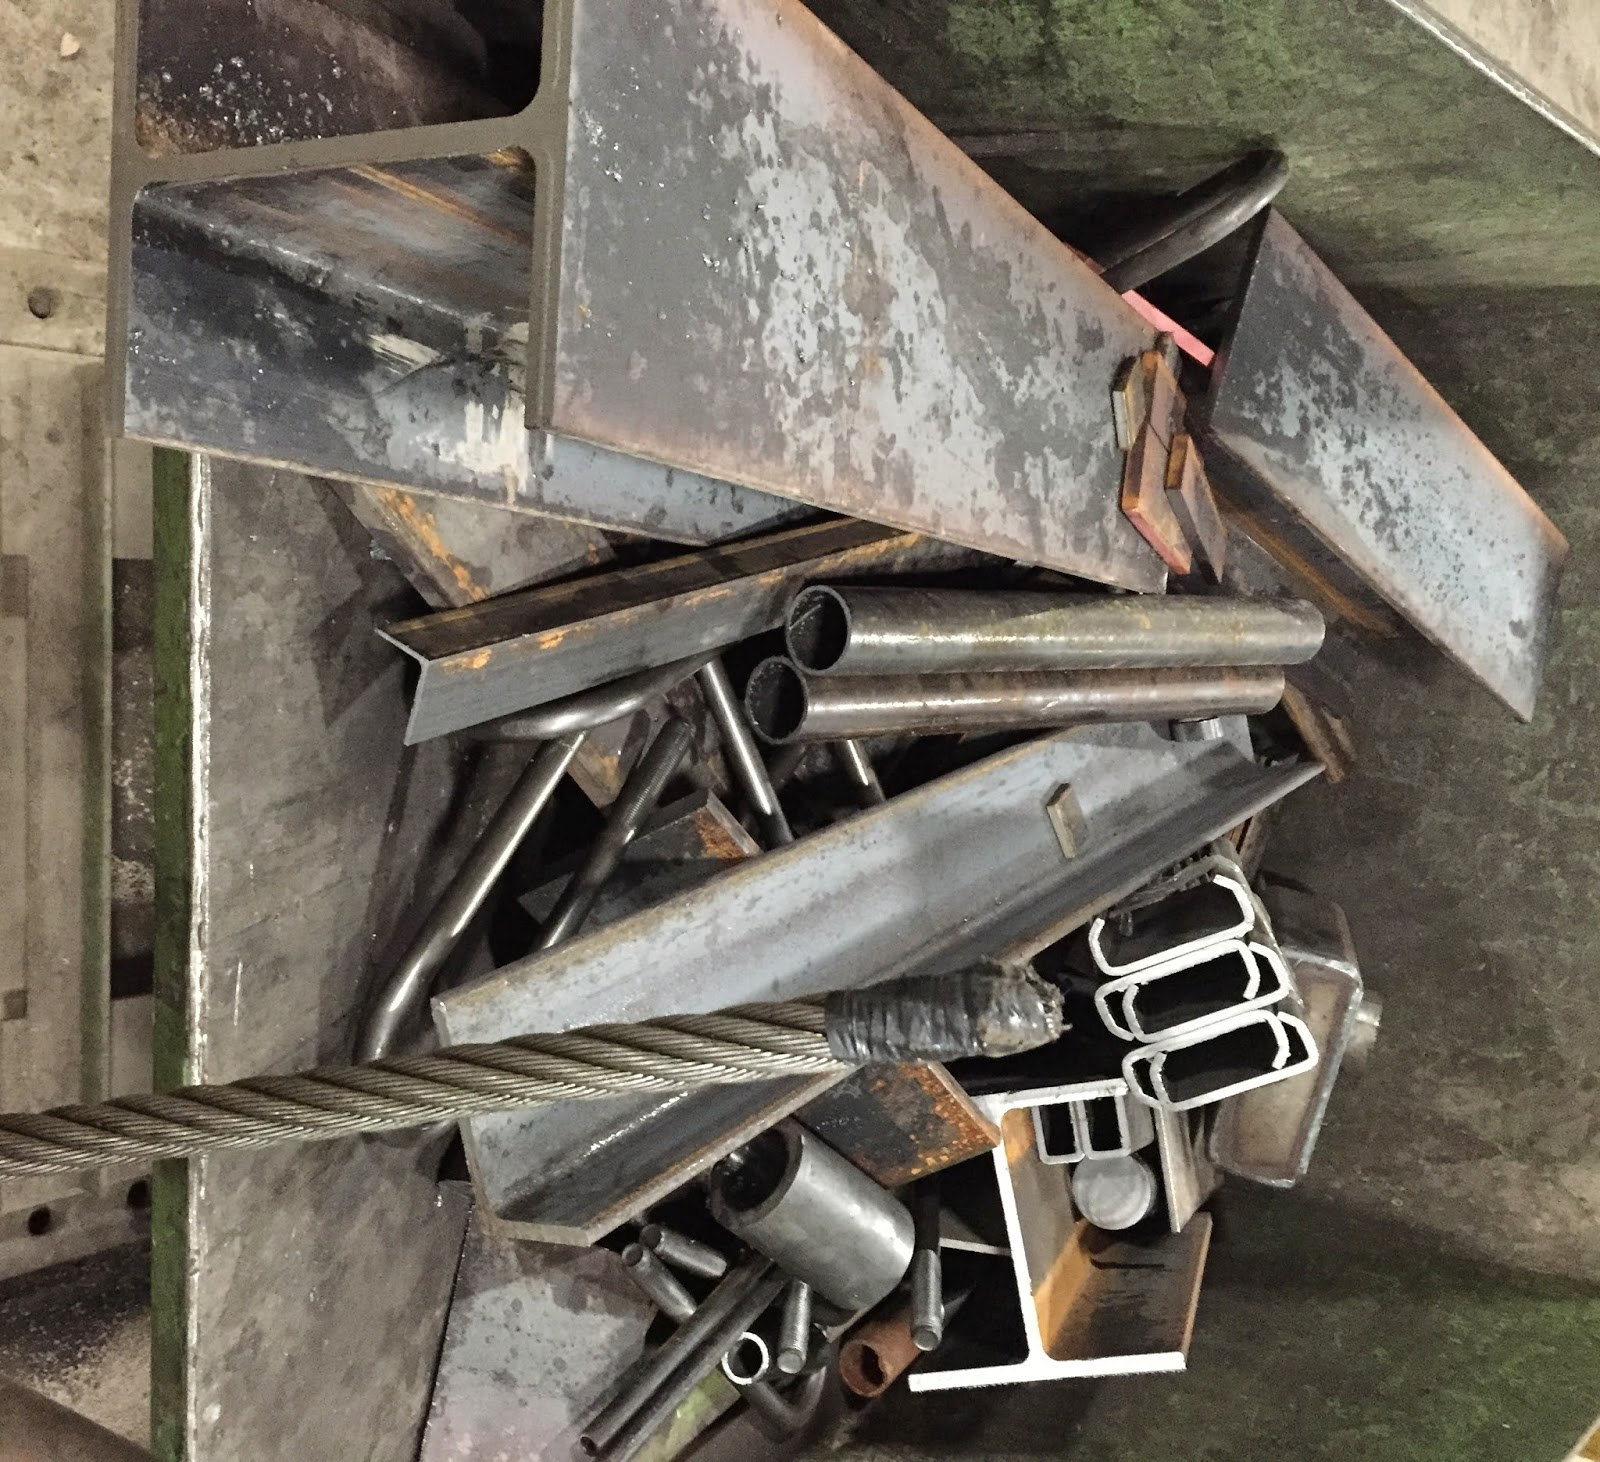 Factory Metal Waste Wilson Metal Recycling. 404 Maury St S, Wilson, NC, 27893, (252) 243-3586